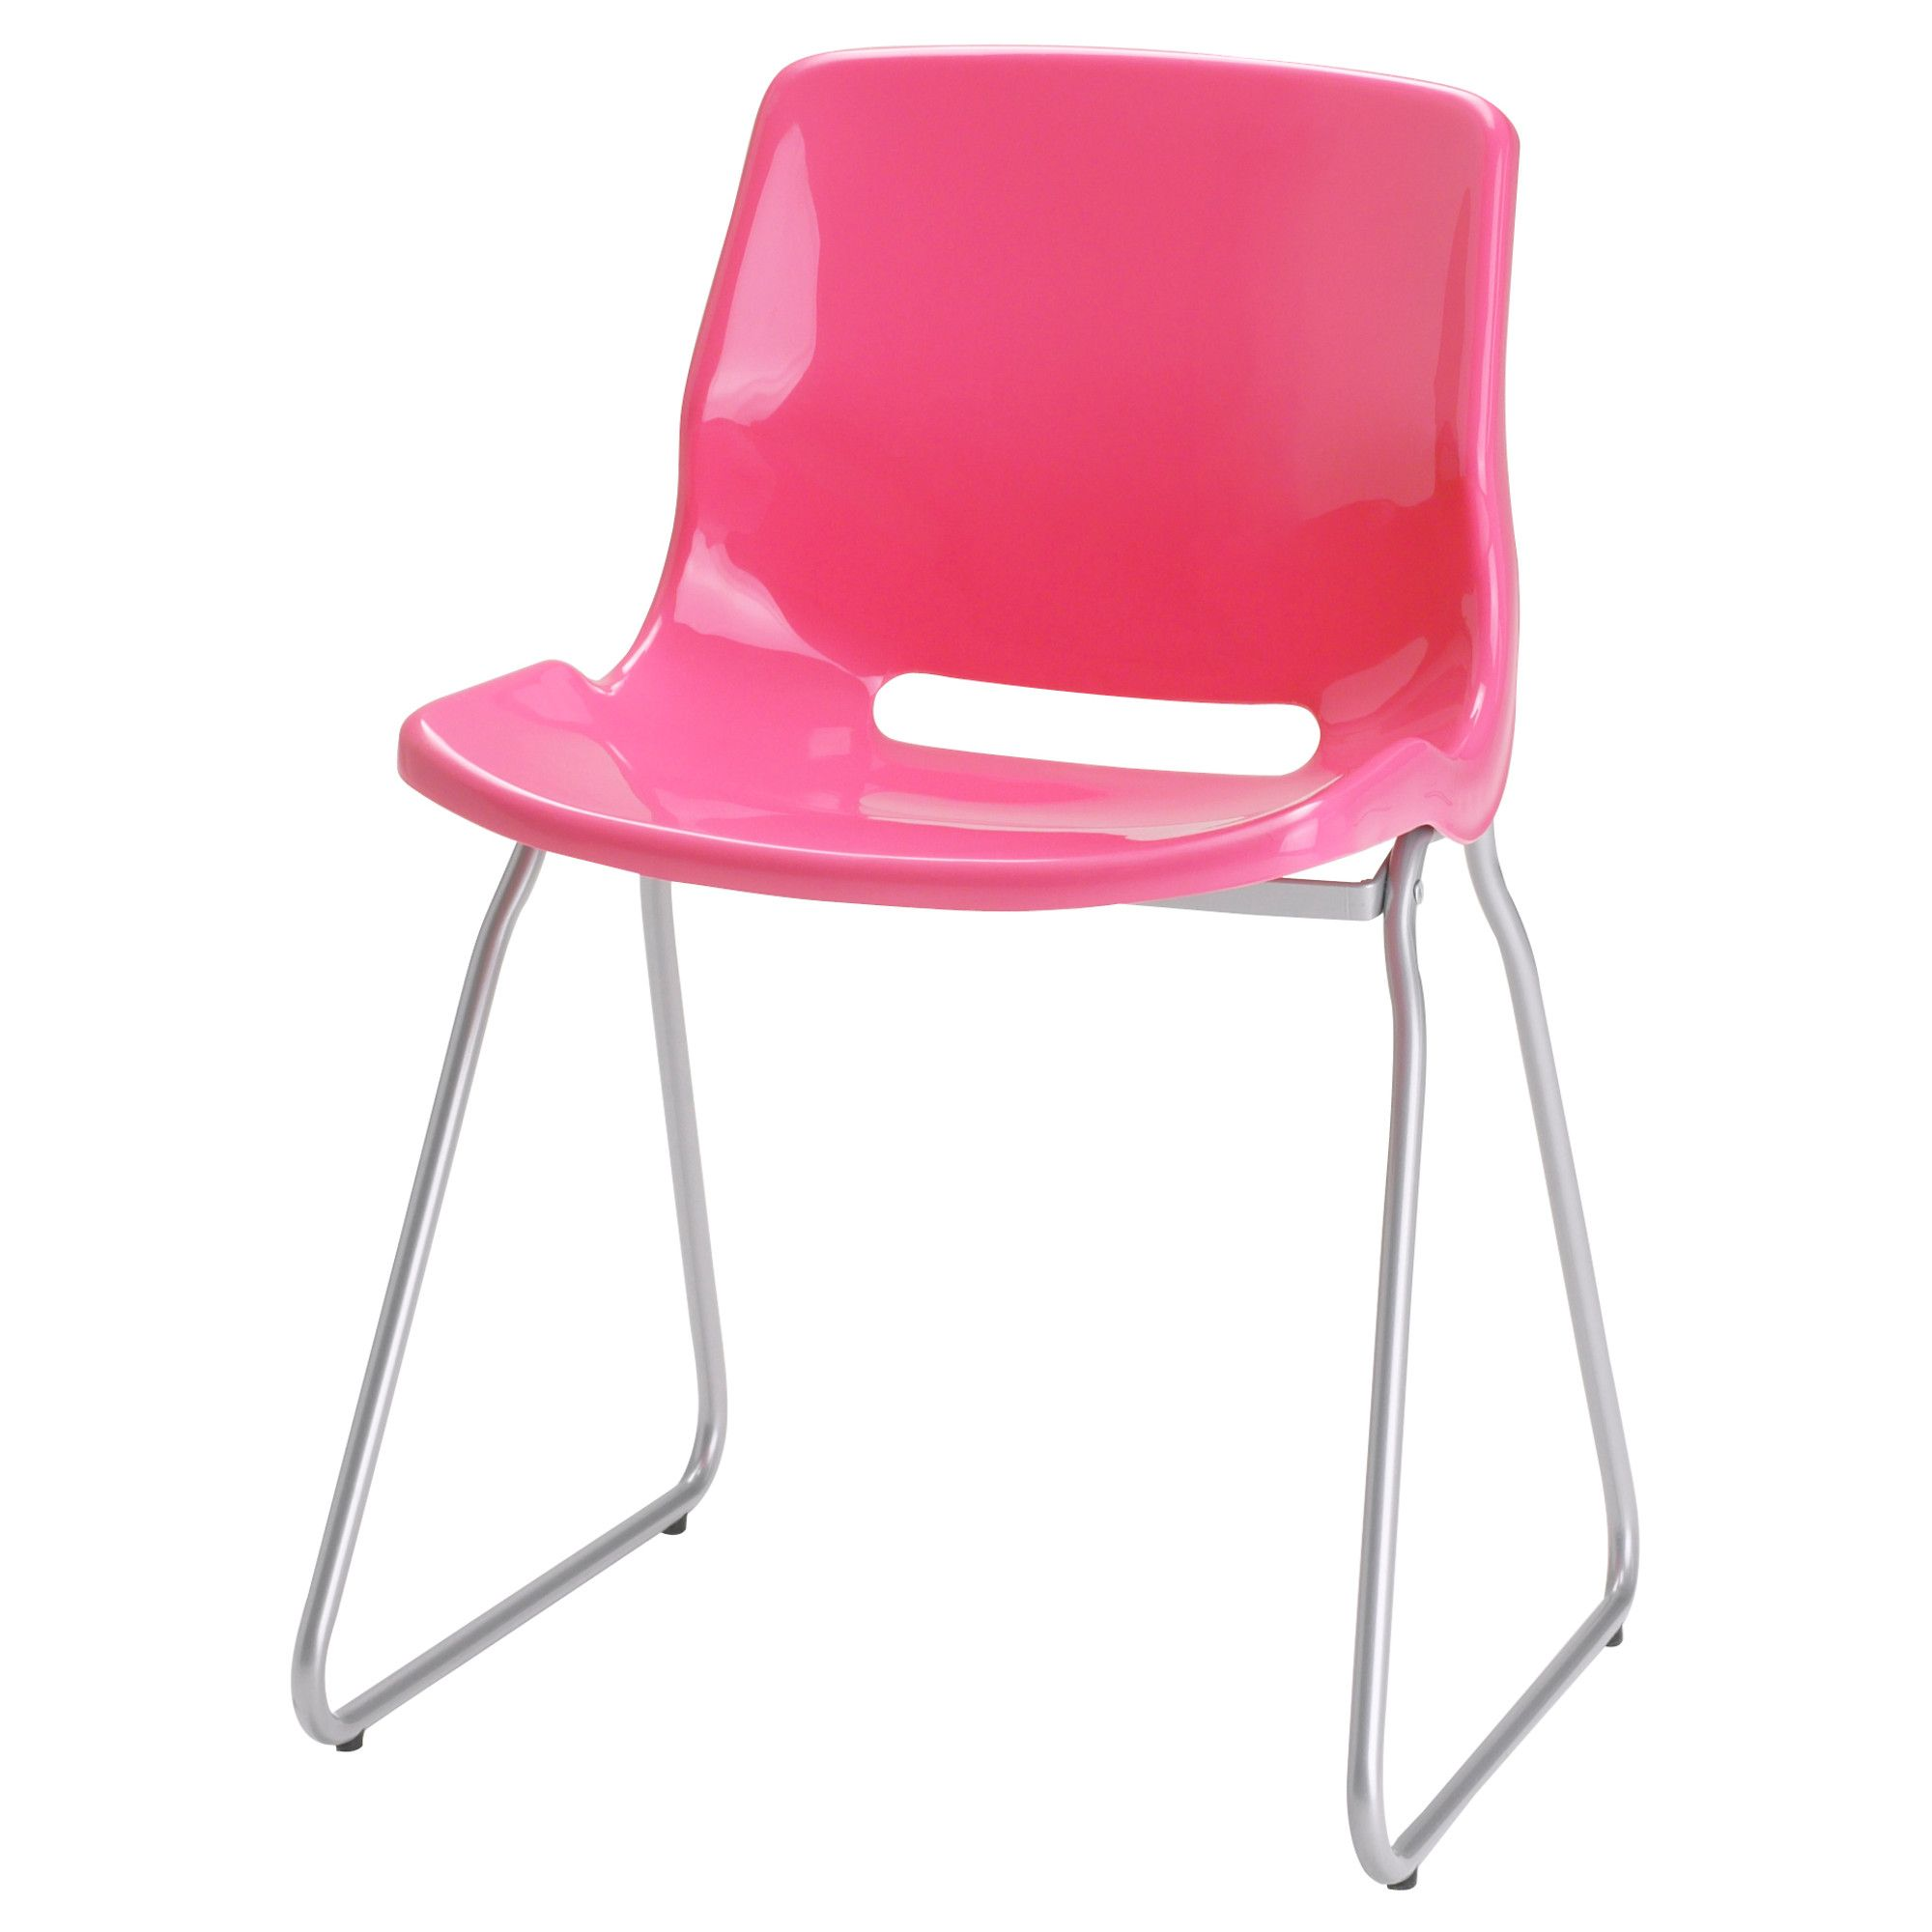 US Furniture and Home Furnishings Pink desk chair